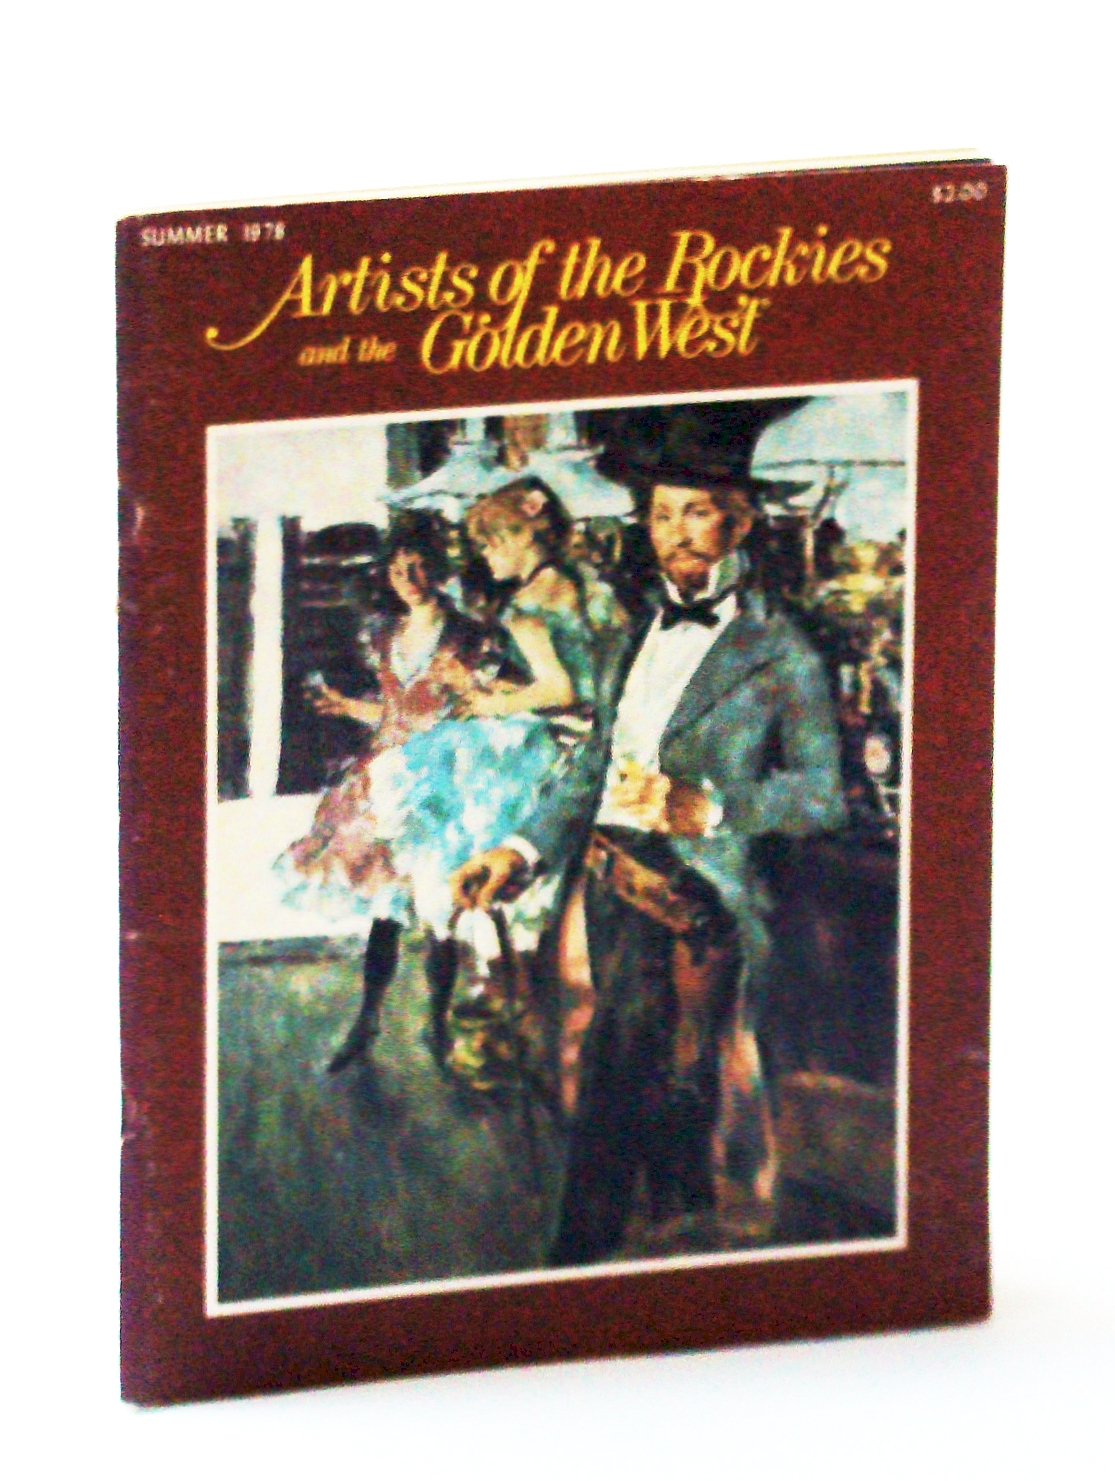 Image for Artists of the Rockies and the Golden West (Magazine), Summer 1978 - Edgar Britton / Michael Lonechild